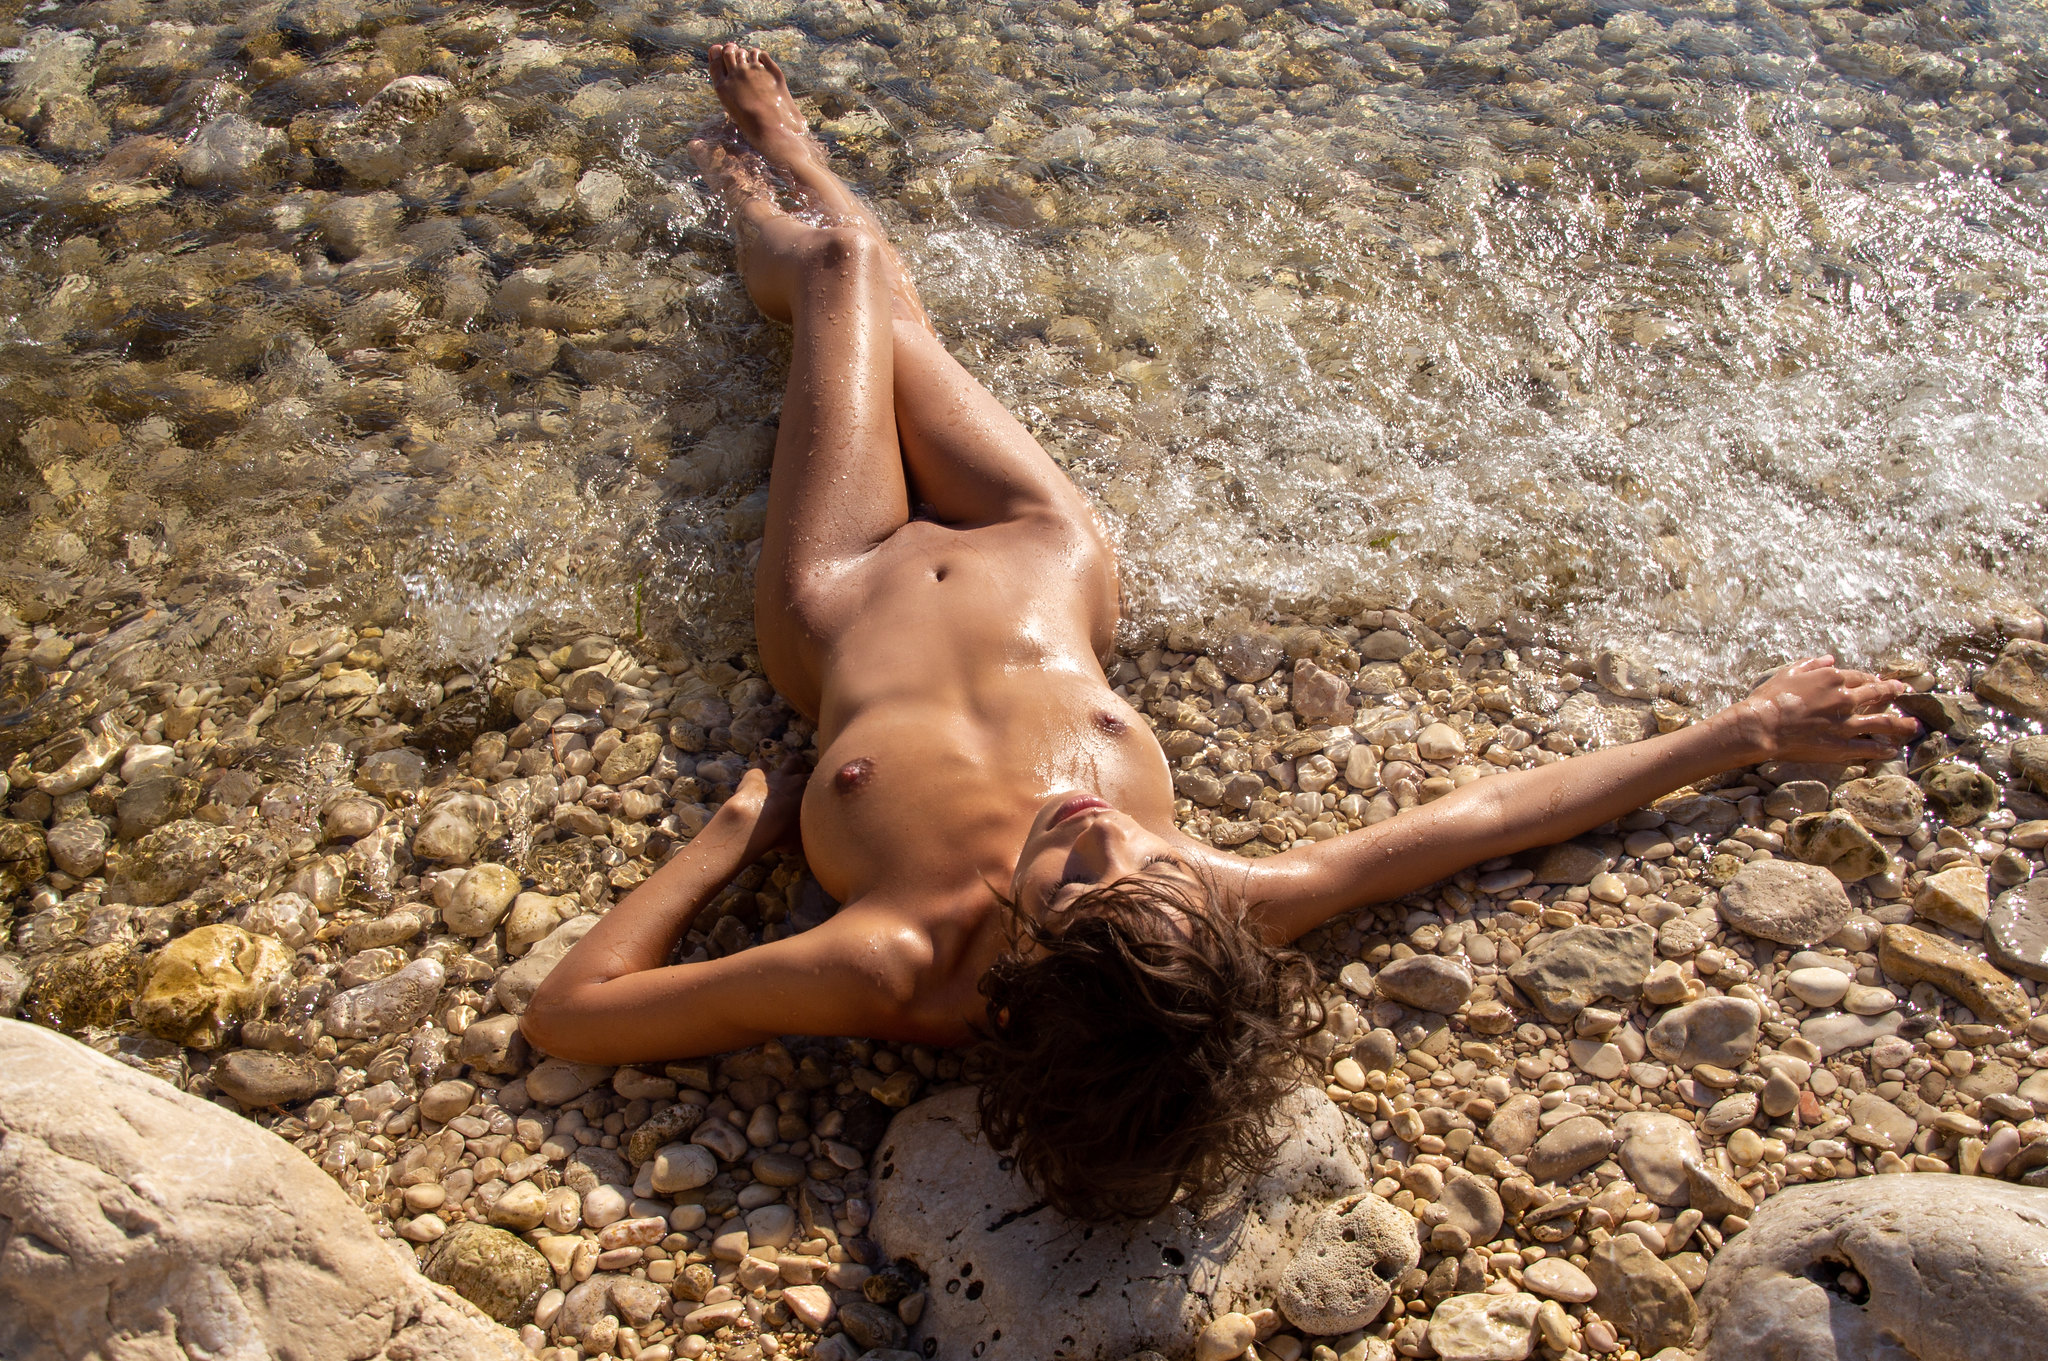 Nude at Croatia